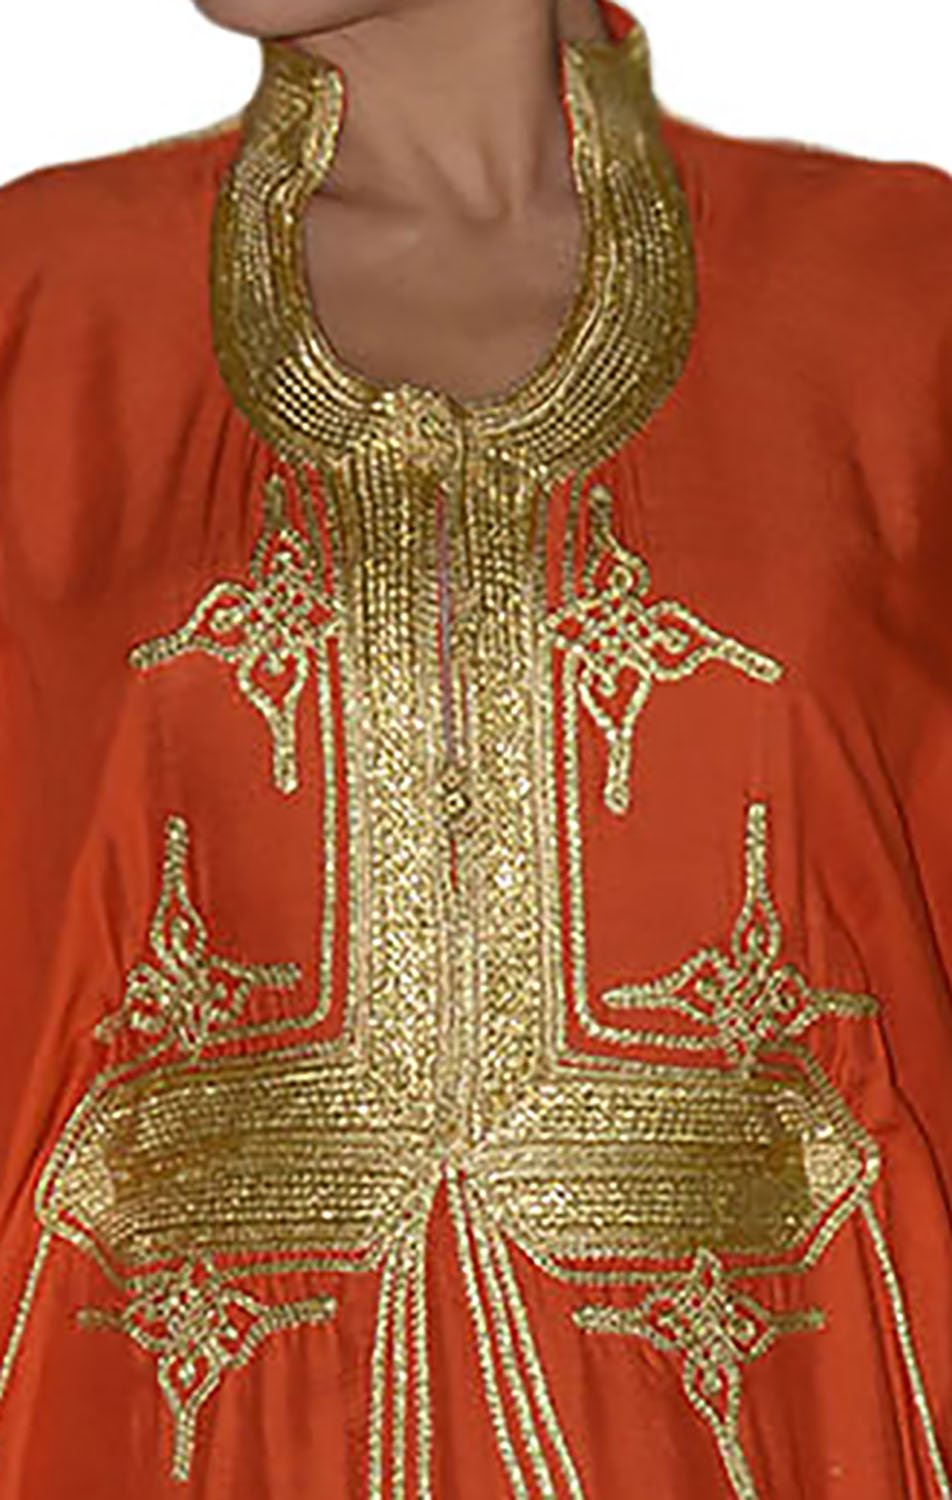 Moroccan Caftan Hand Made Breathable Cotton with Gold Hand Embroidery Long Orange by Moroccan Caftans (Image #5)